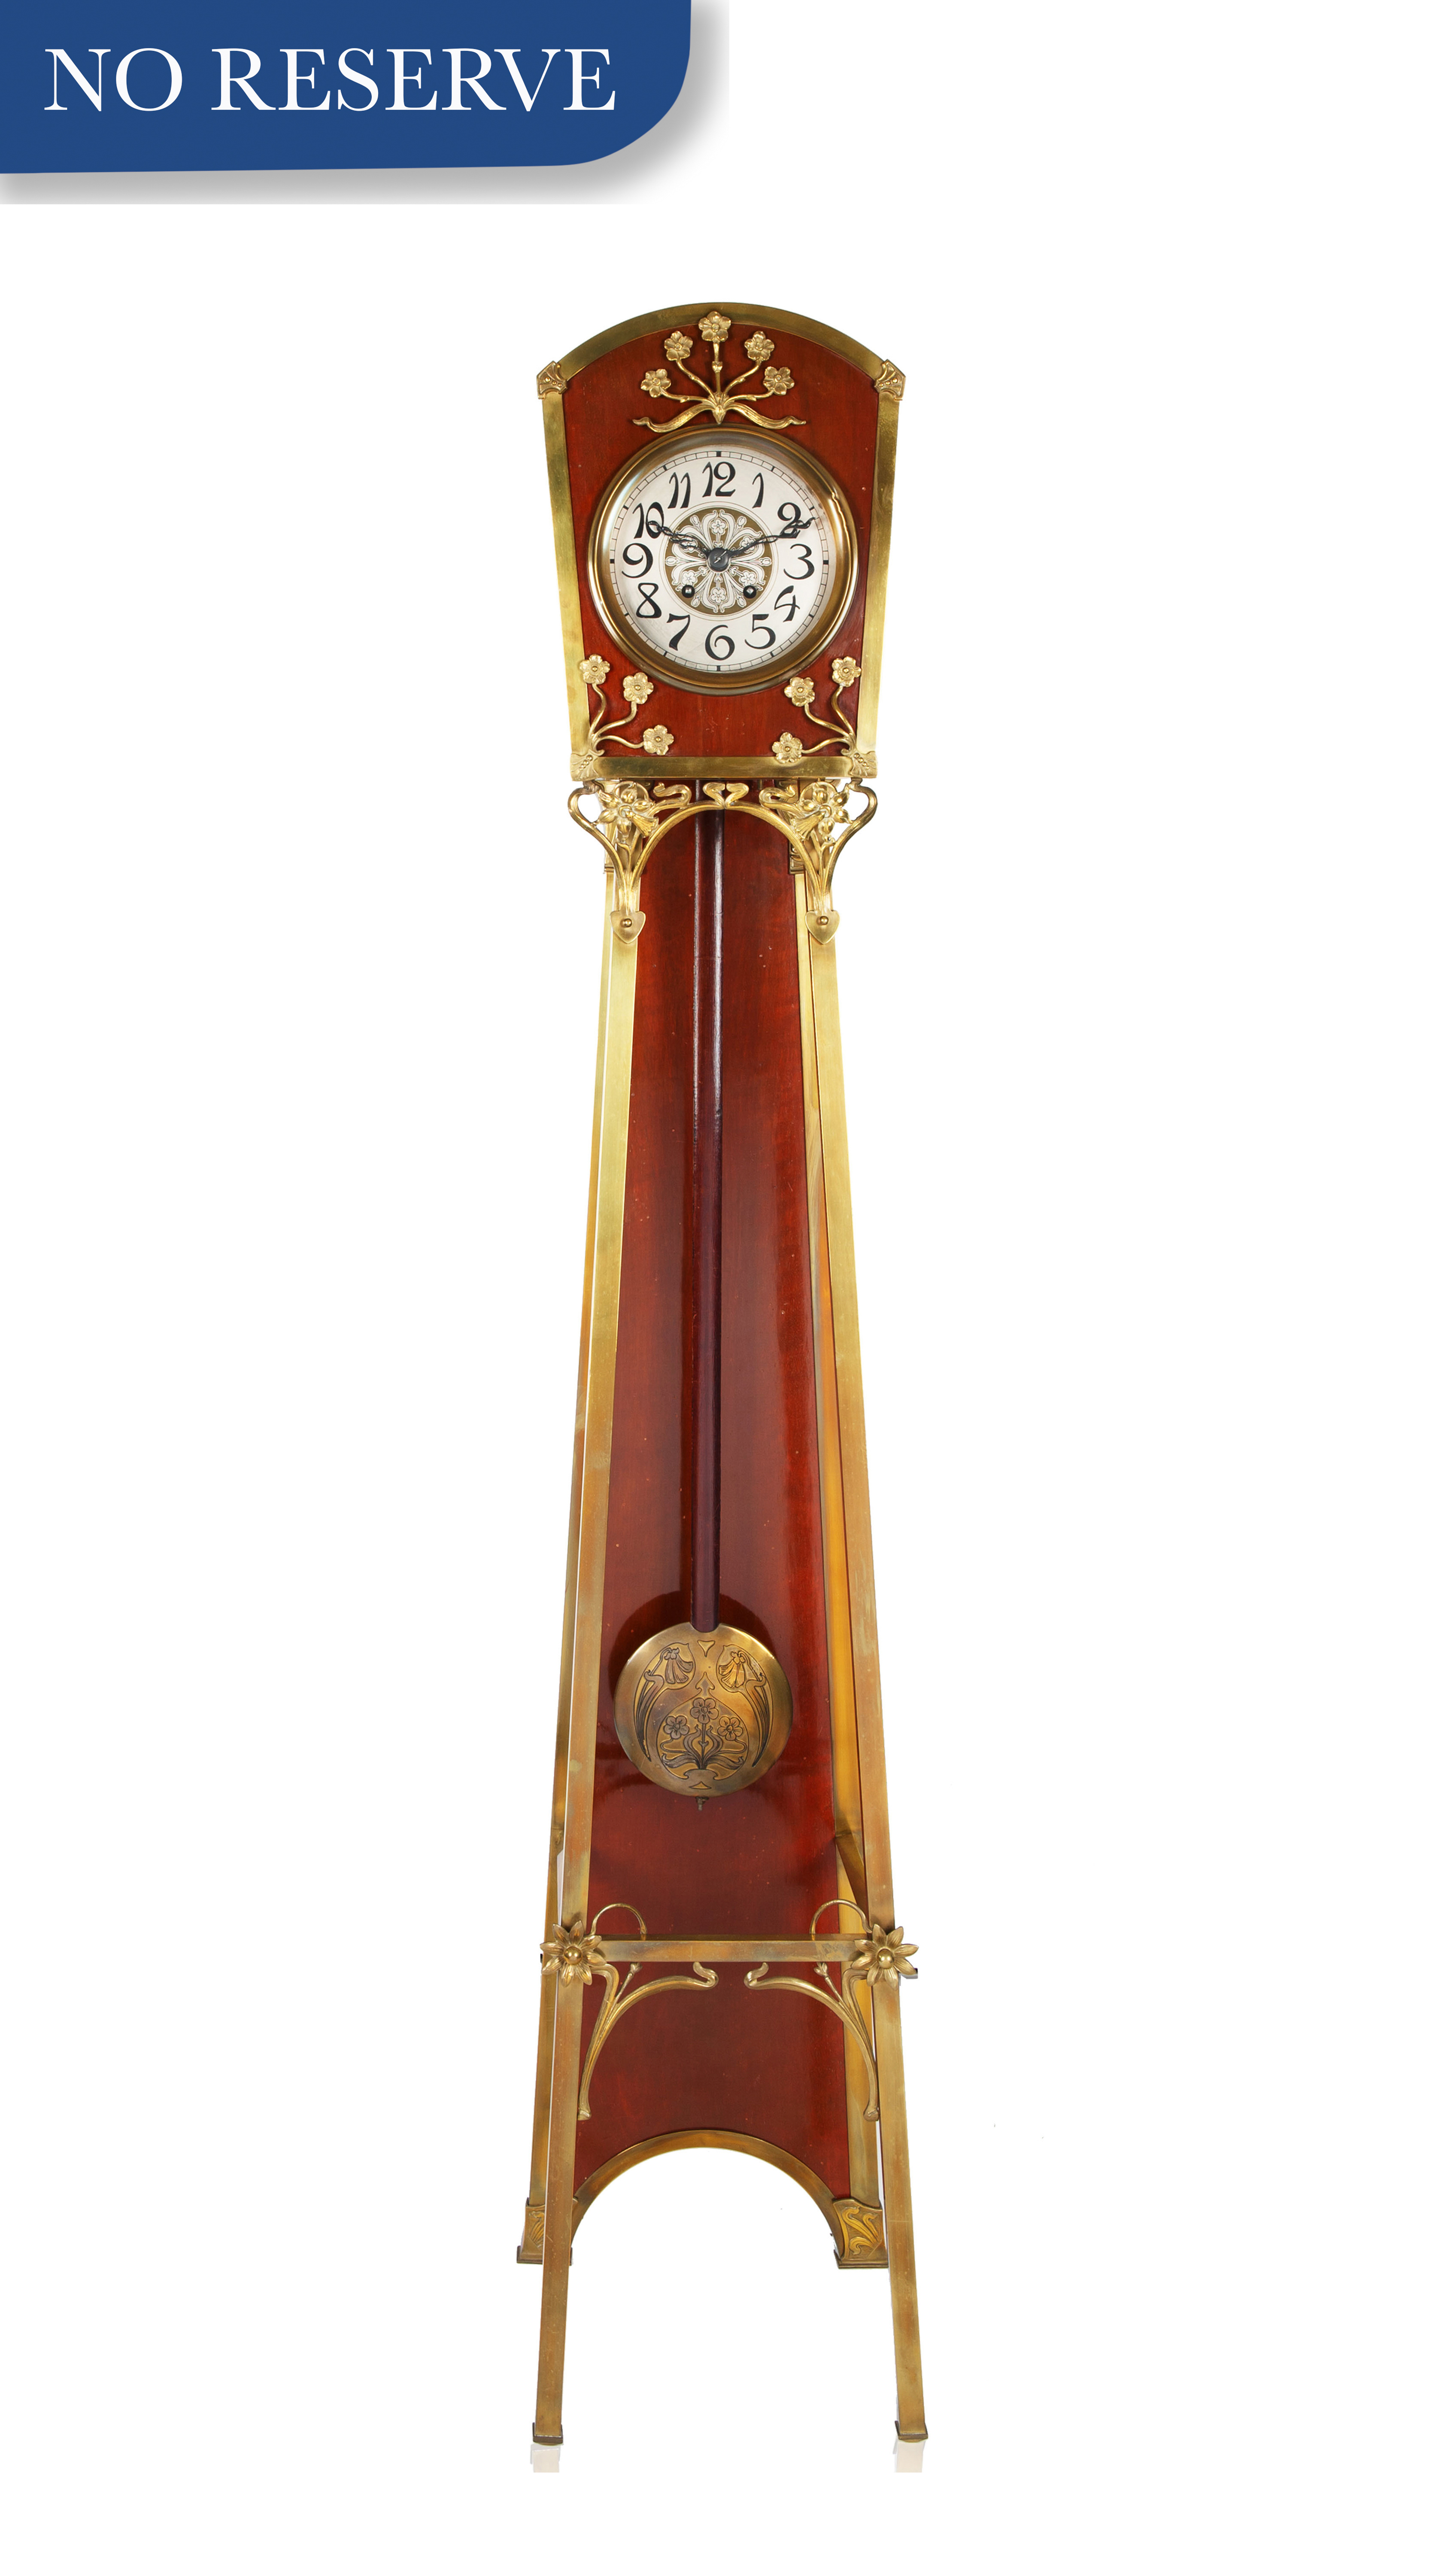 ART NOUVEAU STYLE WOOD AND BRASS GRANDFATHER CLOCK